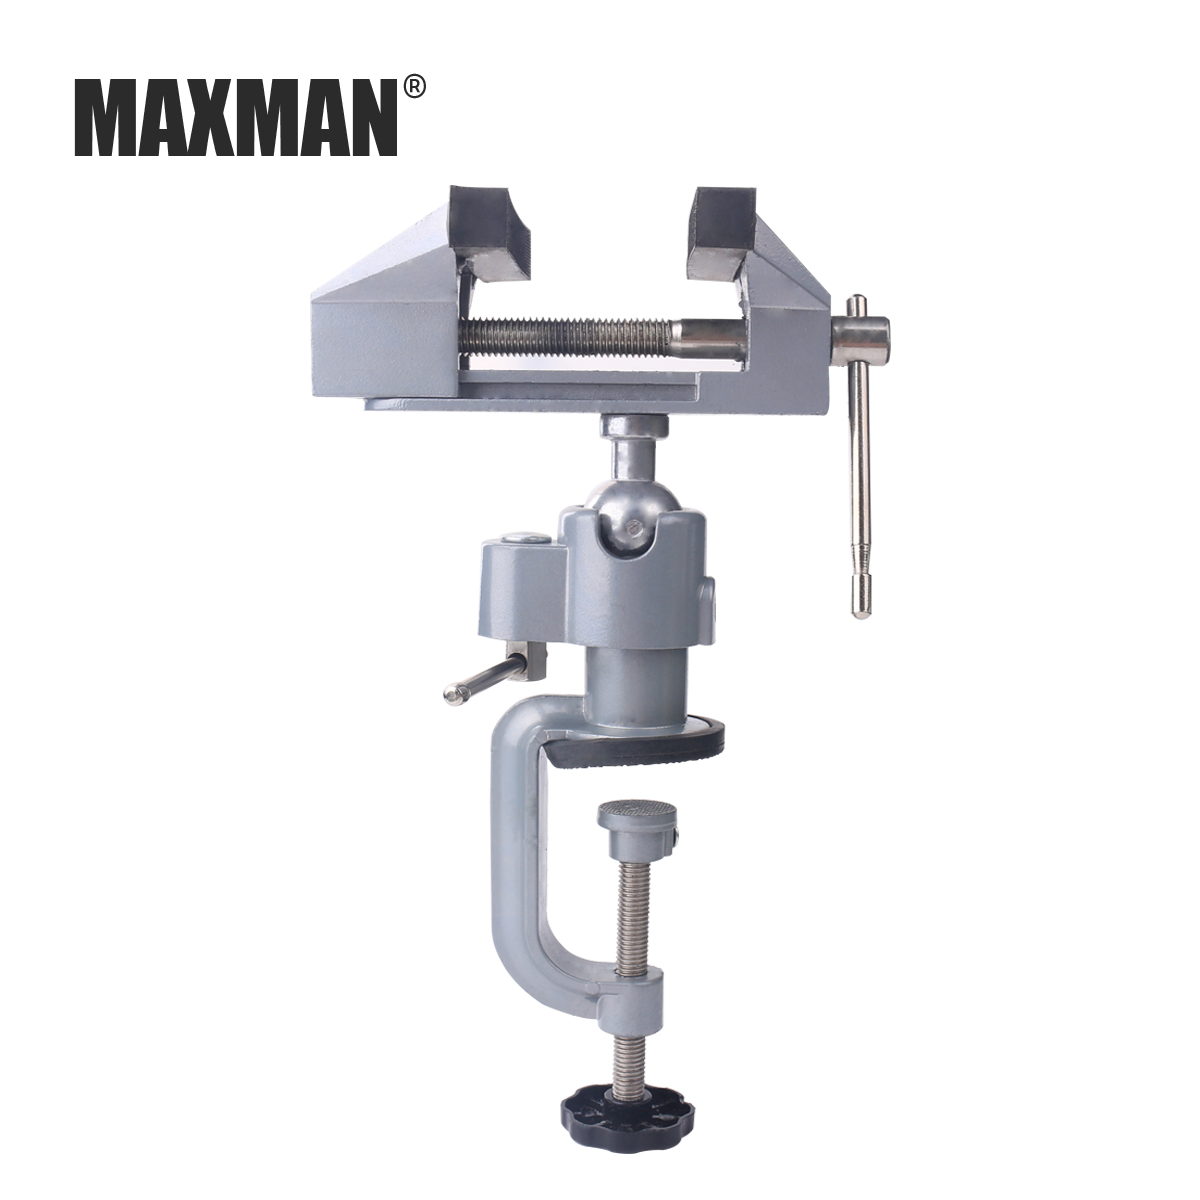 MAXMAN Bench Vise Aluminum 75mm Table Screw Vise Bench Clamp Screw Vise for DIY Craft Mold Fixed Repair Tool goxawee mini table vice dremel rotary tool screw bench vise for diy jewellery craft mould fixed repair tool dremel tools